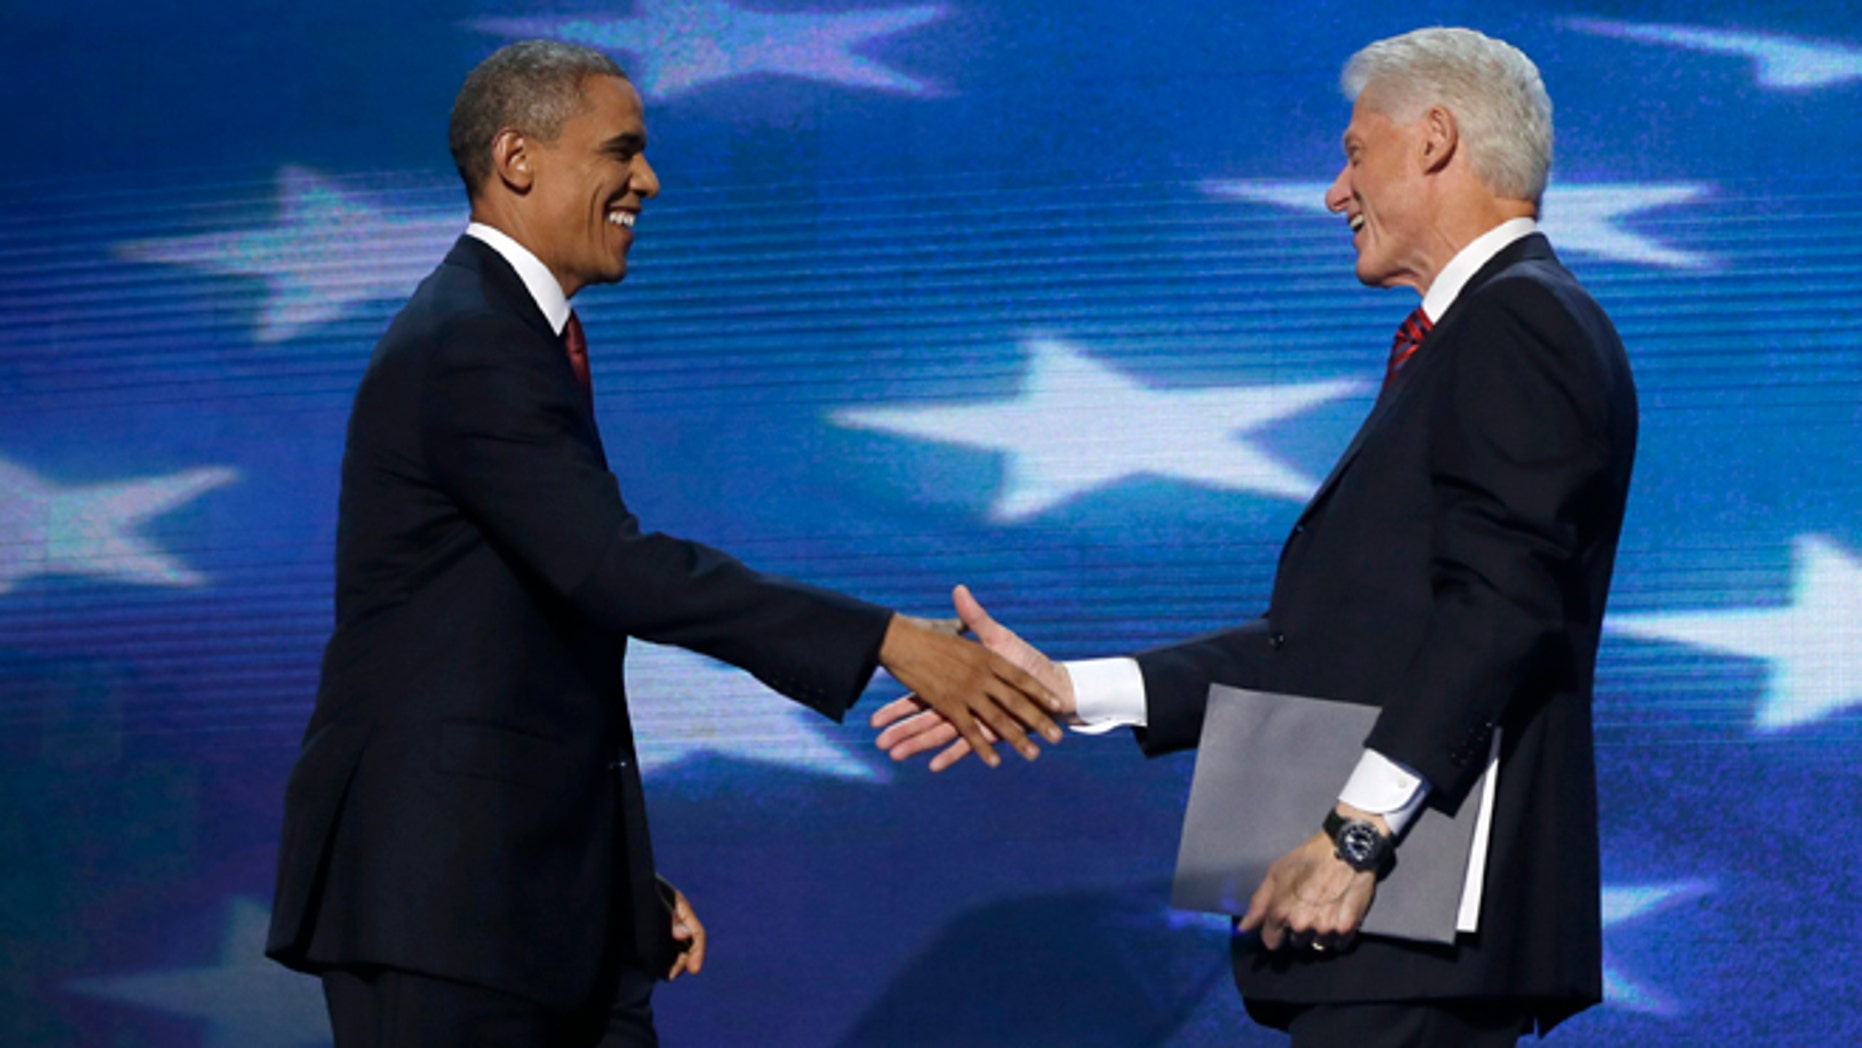 Sept. 5, 2012: President Barack Obama shakes hands with Former President Bill Clinton during the Democratic National Convention in Charlotte, N.C.